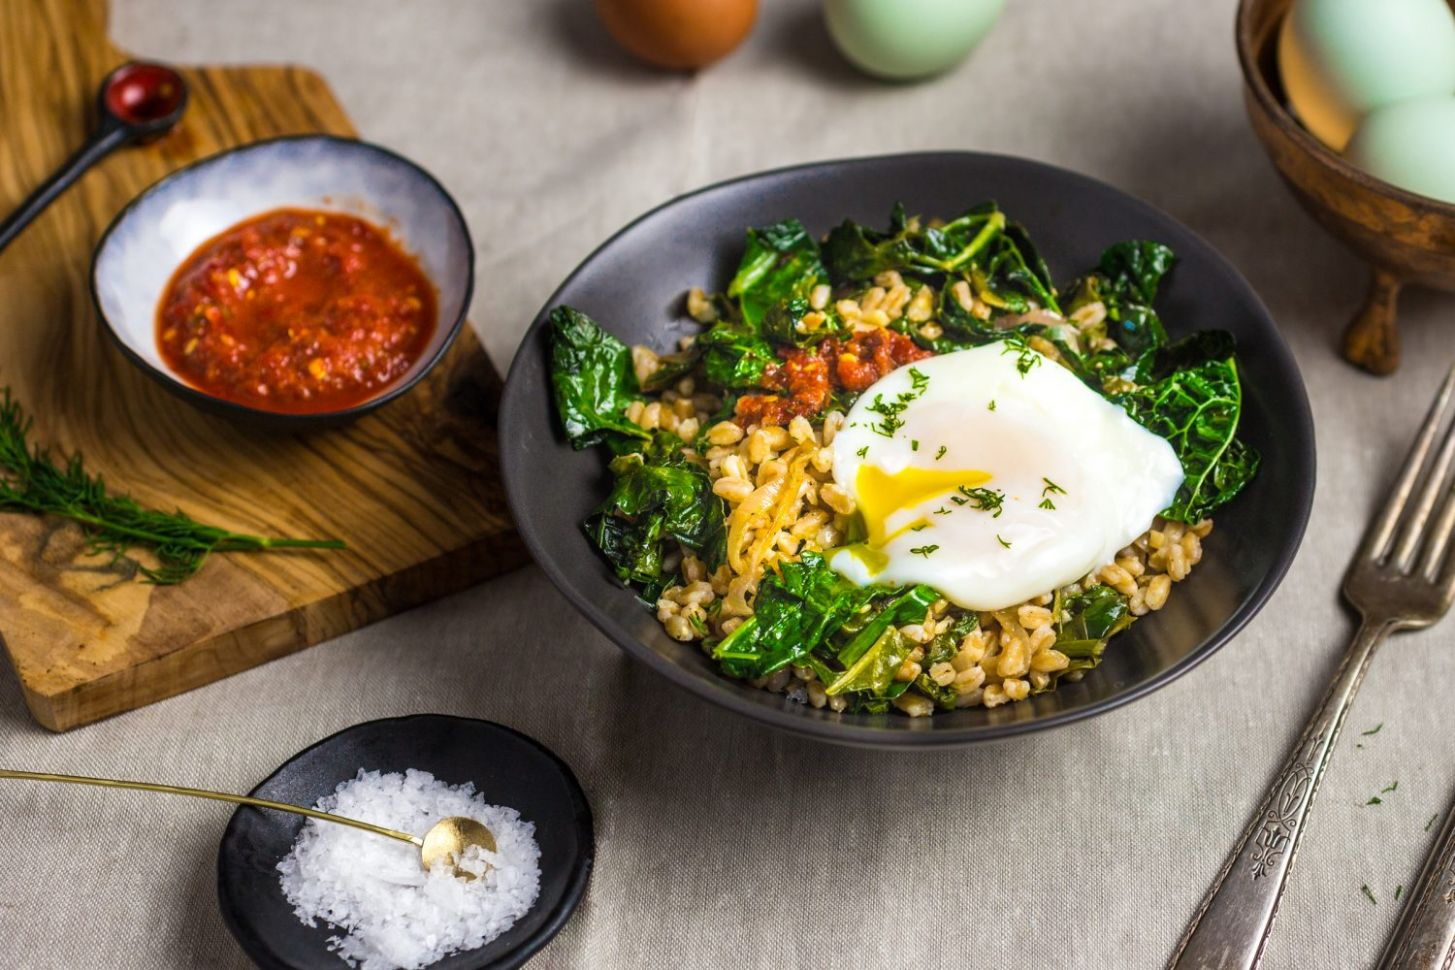 Stir-Fried Farro With Garlicky Kale and Poached Egg Recipe